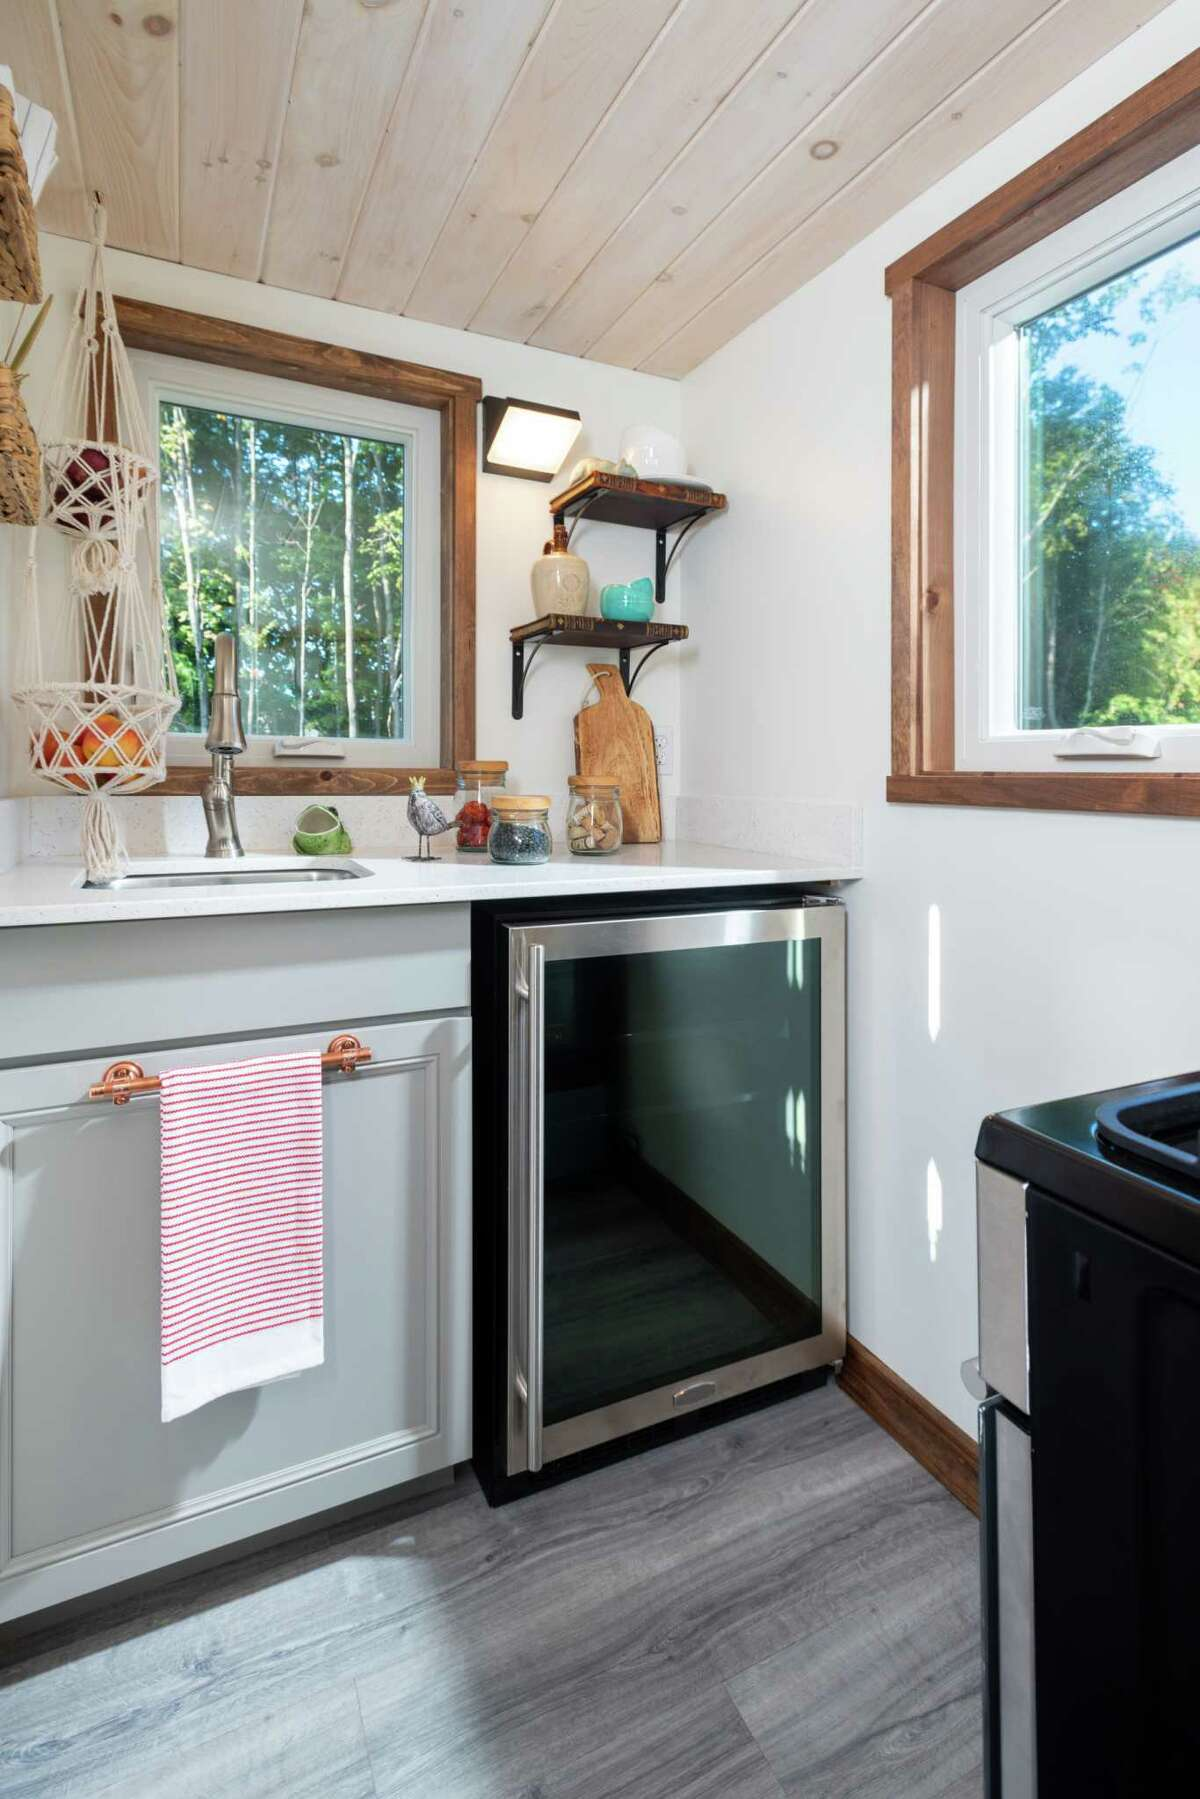 Students from Washington-Saratoga-Warren-Hamilton-Essex BOCES built a tiny house that's now up for auction. Here's a view of the kitchen.(Photo provided by WSWHE BOCES)